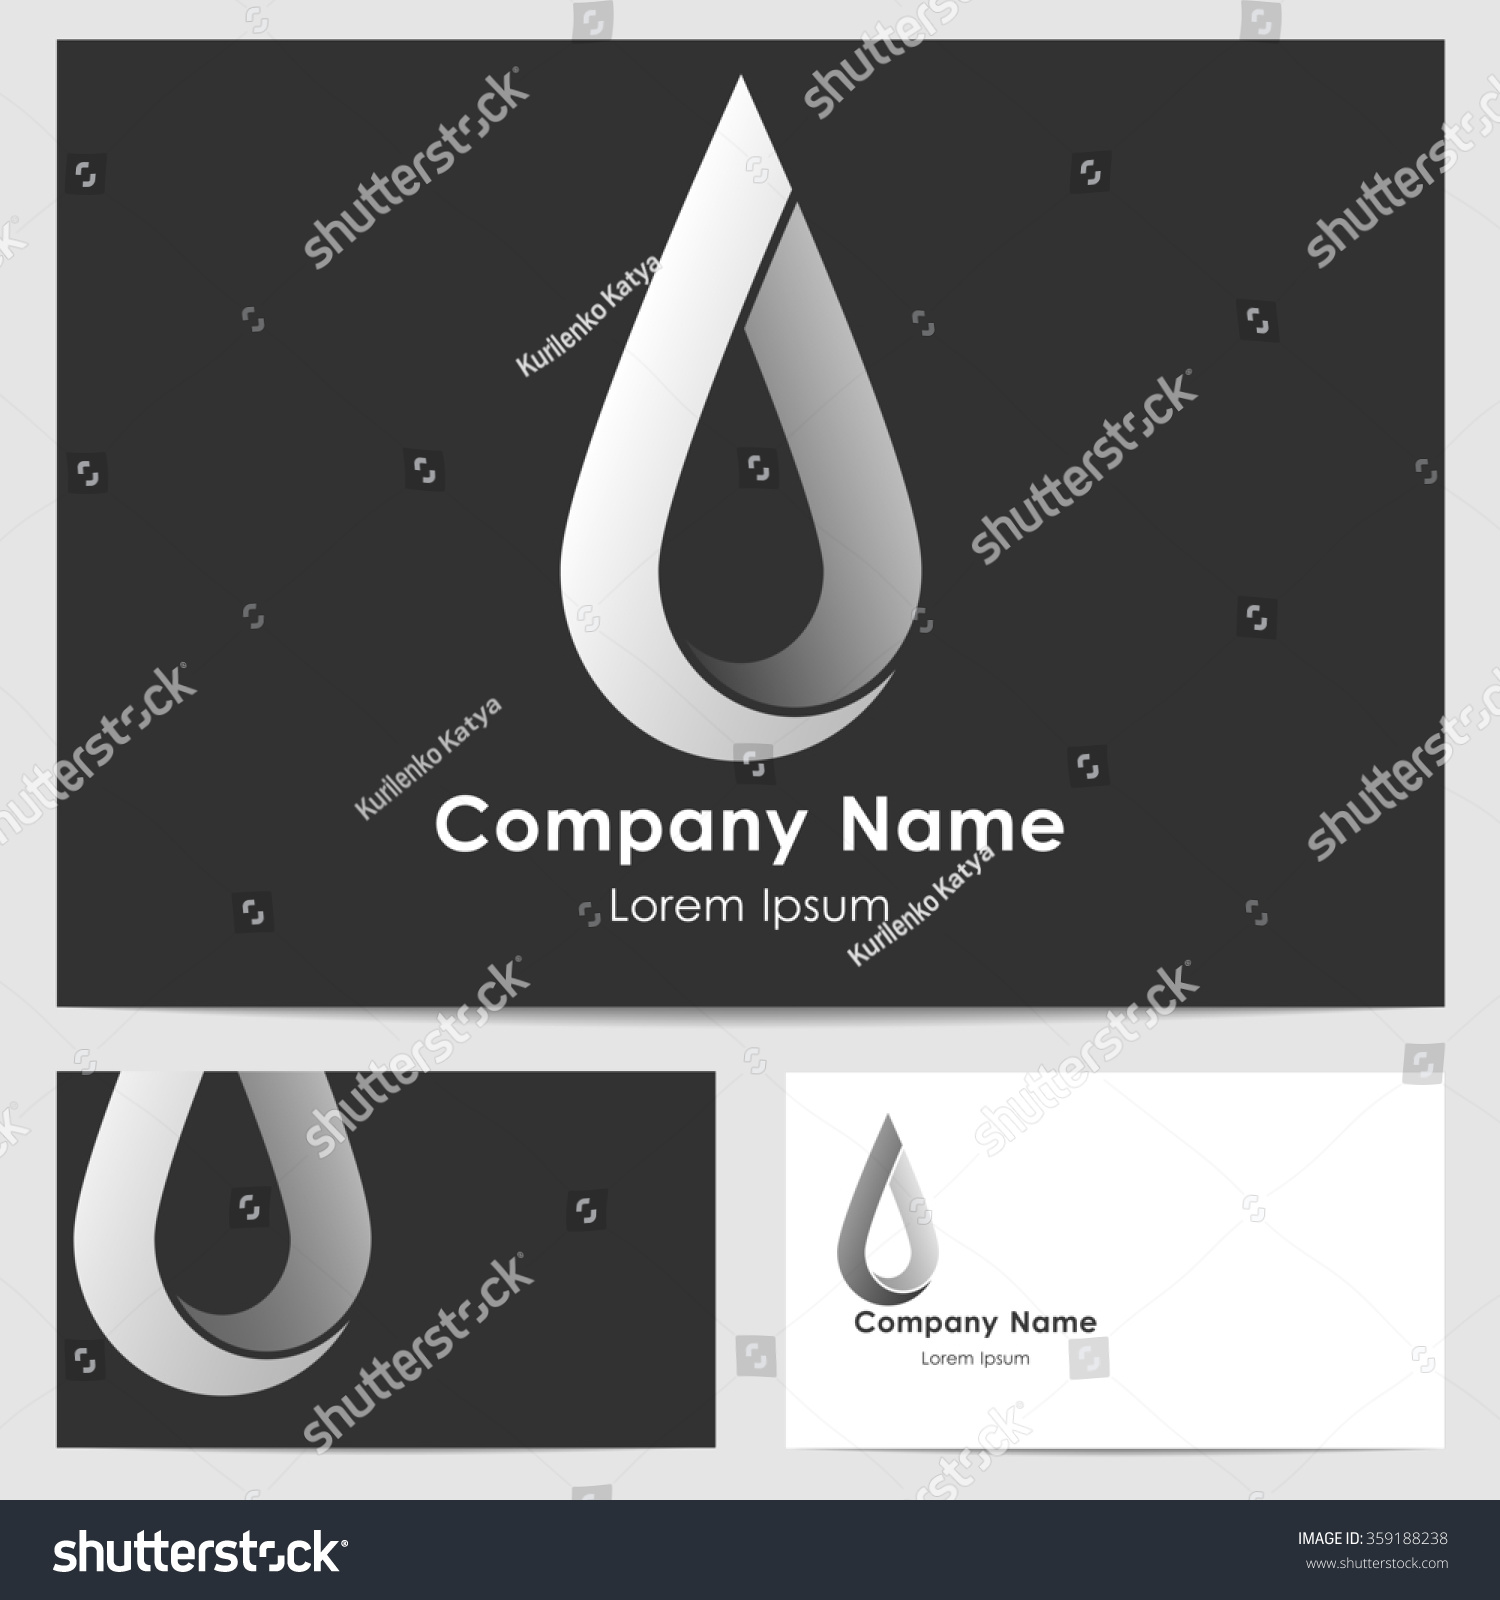 business monochrome card template logo drop stock illustration 359188238 shutterstock. Black Bedroom Furniture Sets. Home Design Ideas